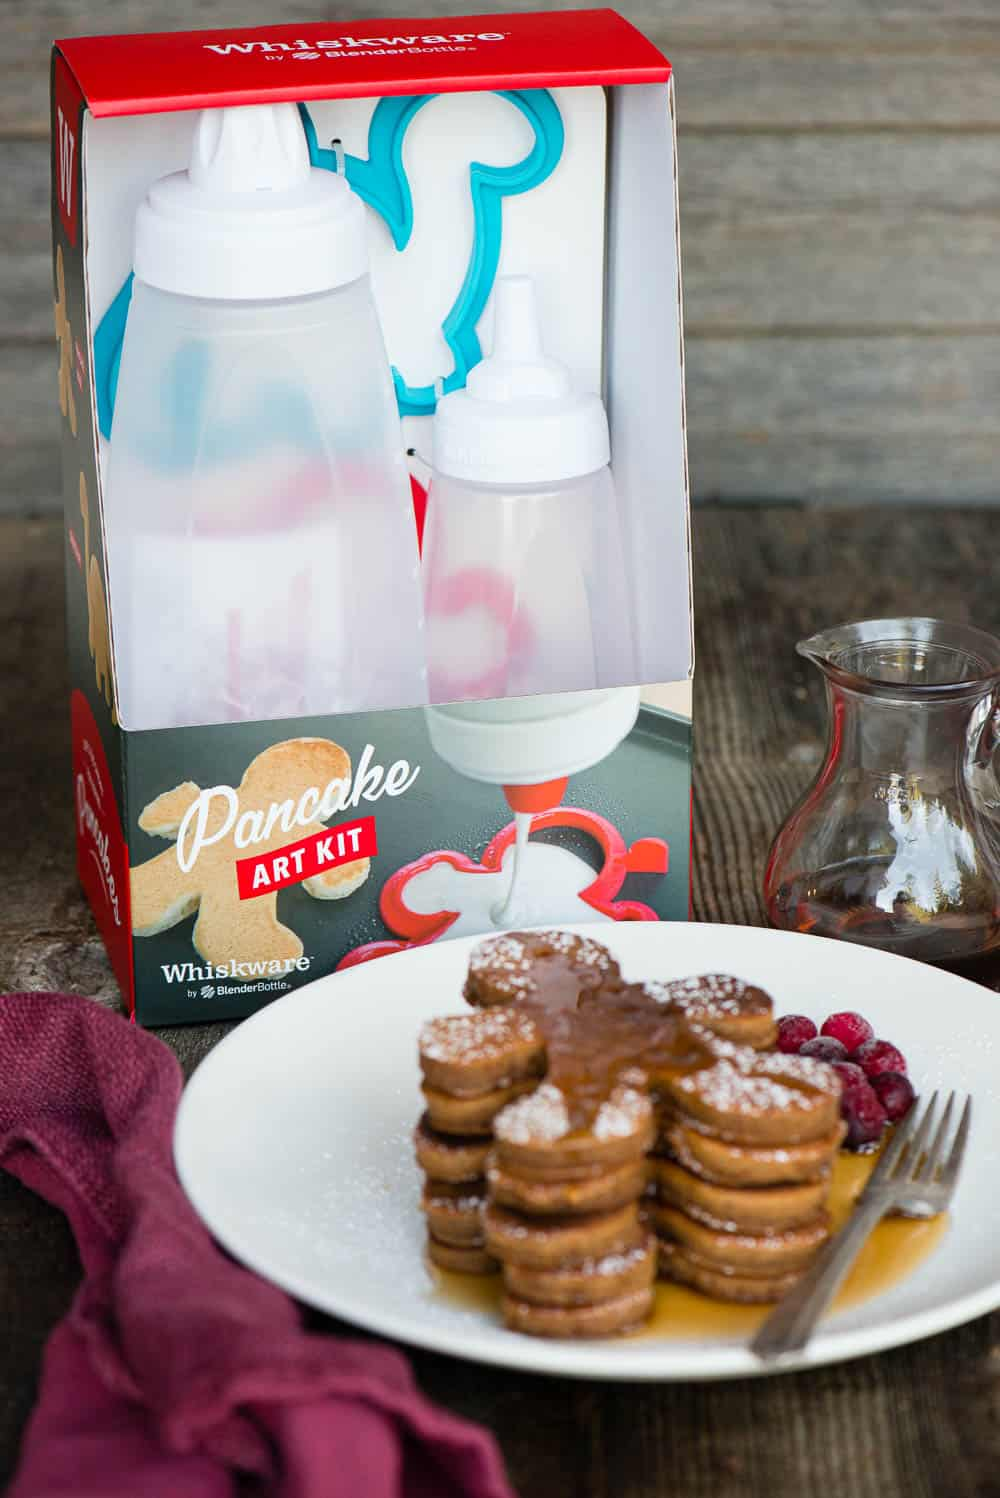 how to make gingerbread flavored pancakes using pancake art kit